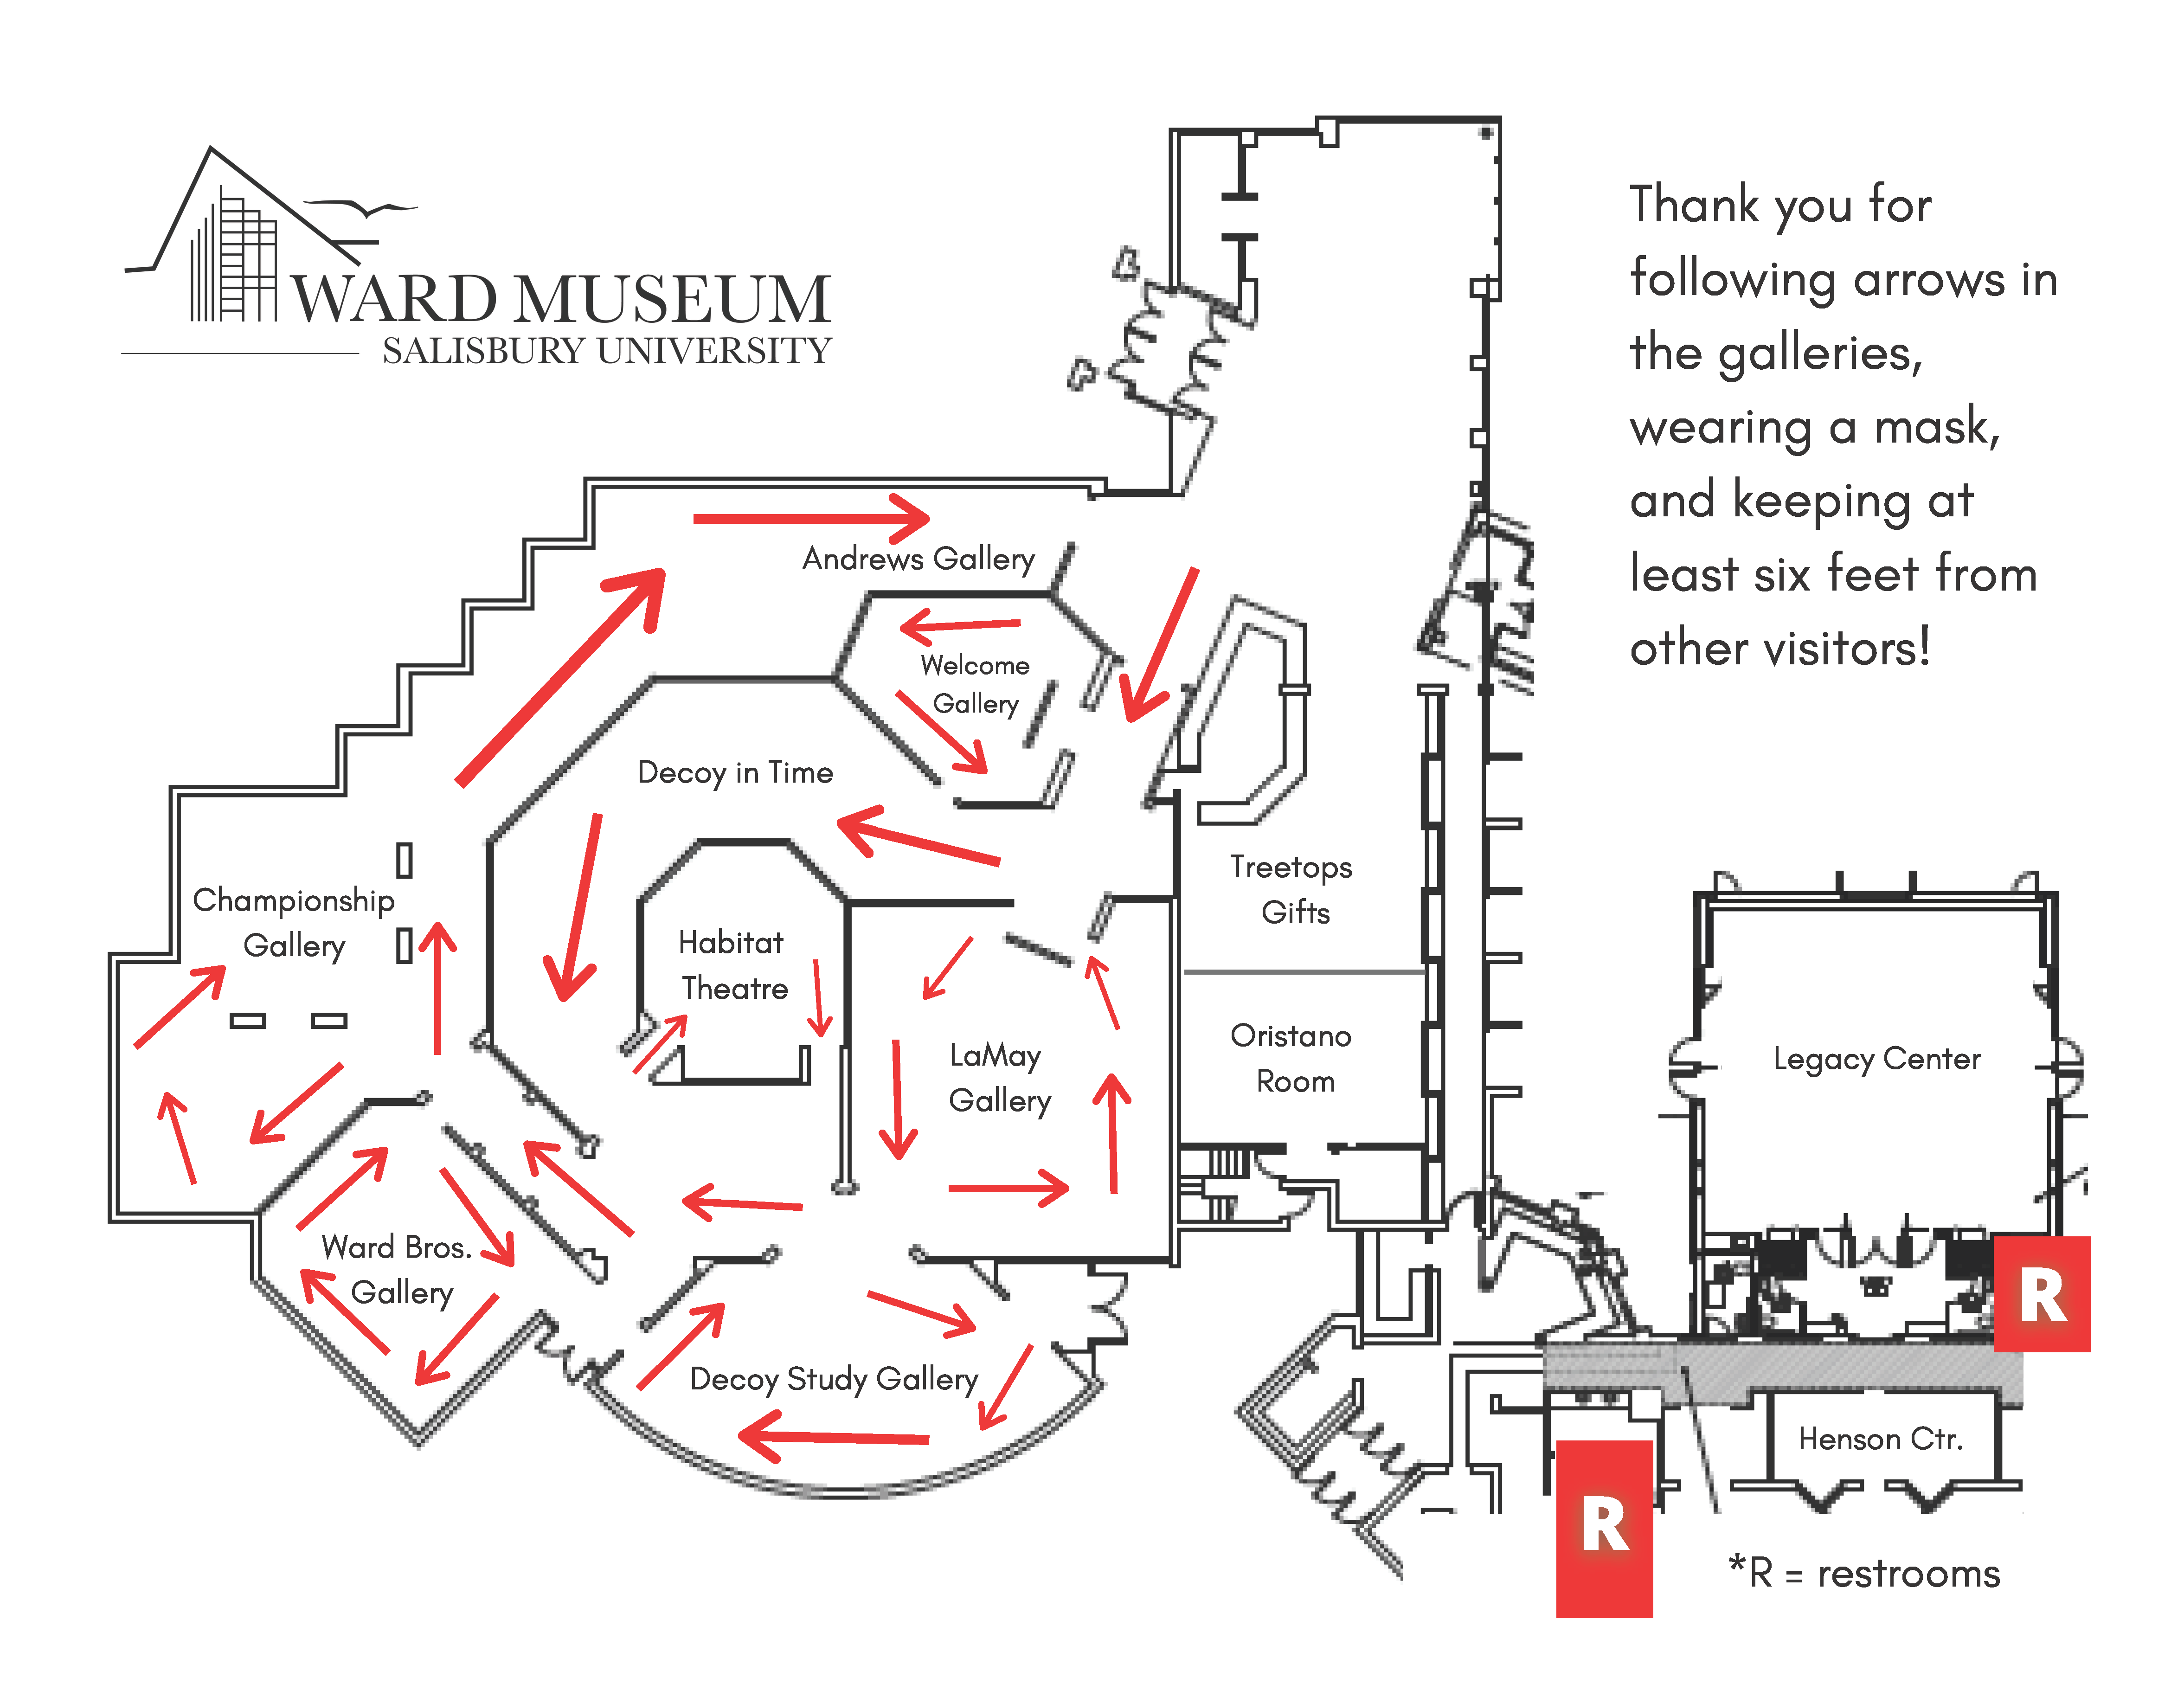 Ward Museum Map